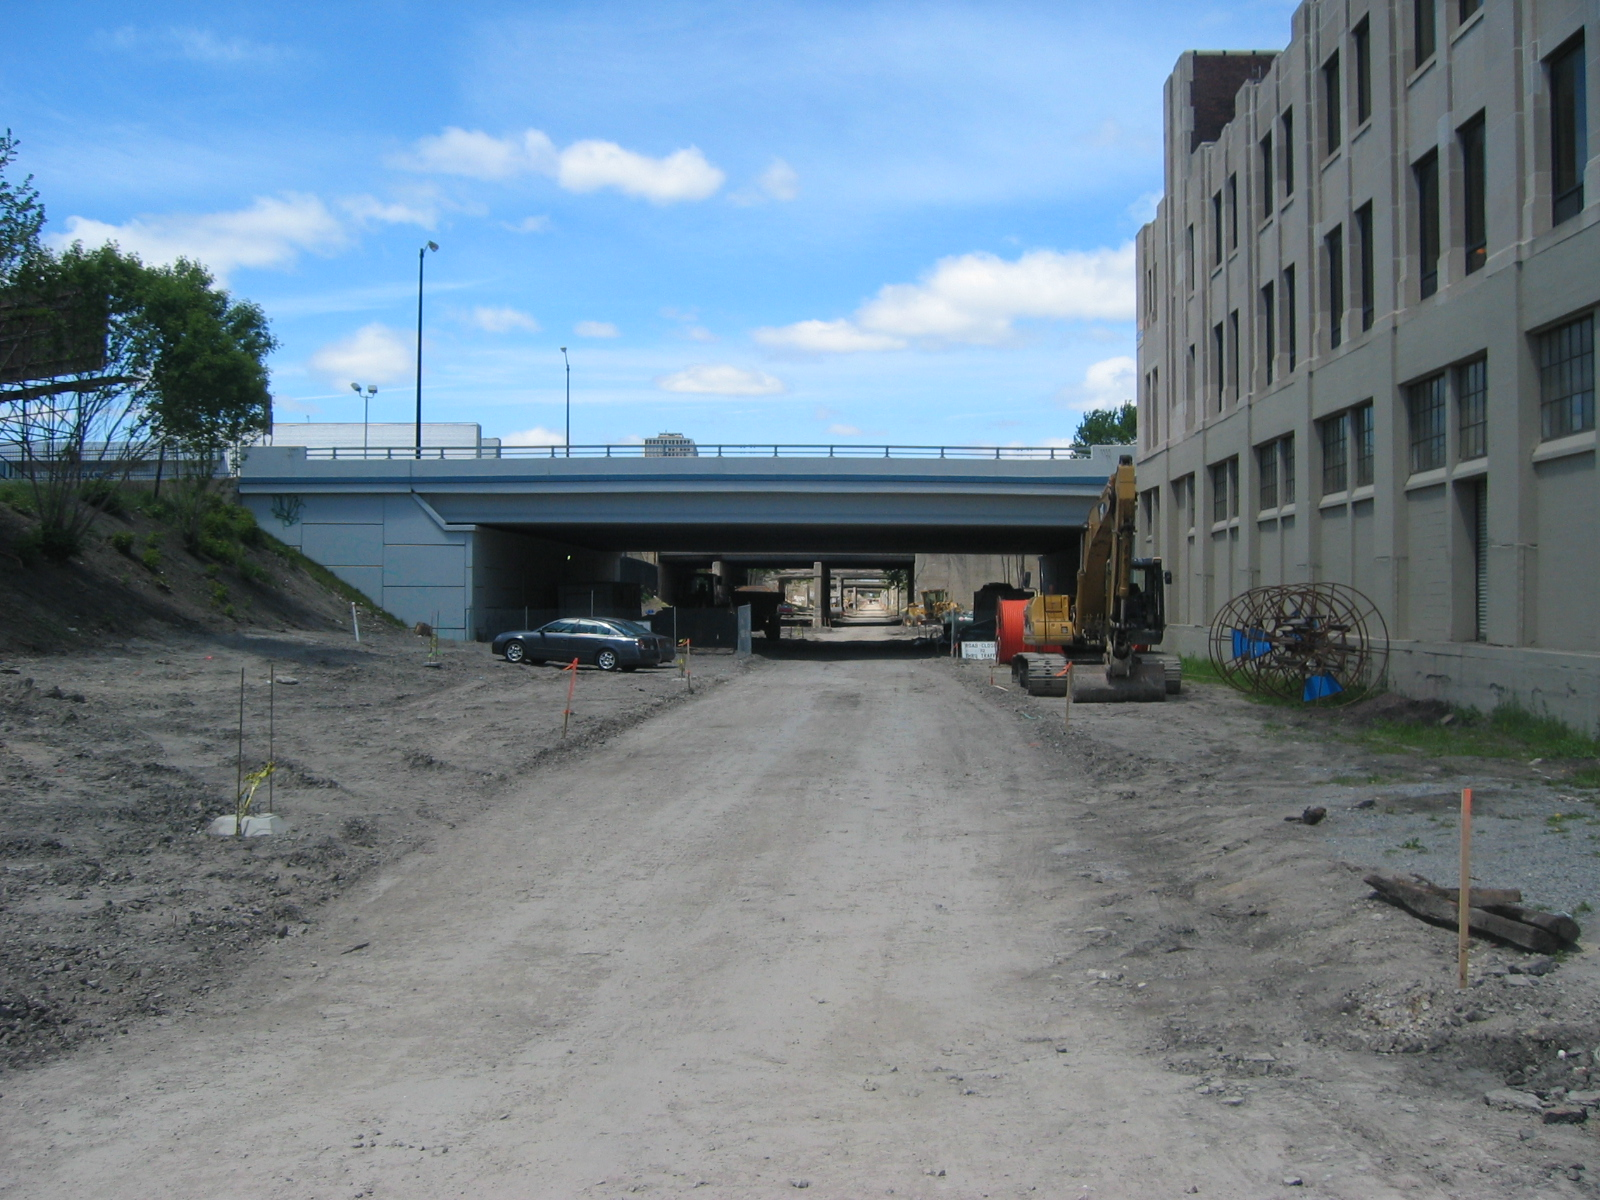 The south end of the Dequindre Cut at Woodbridge